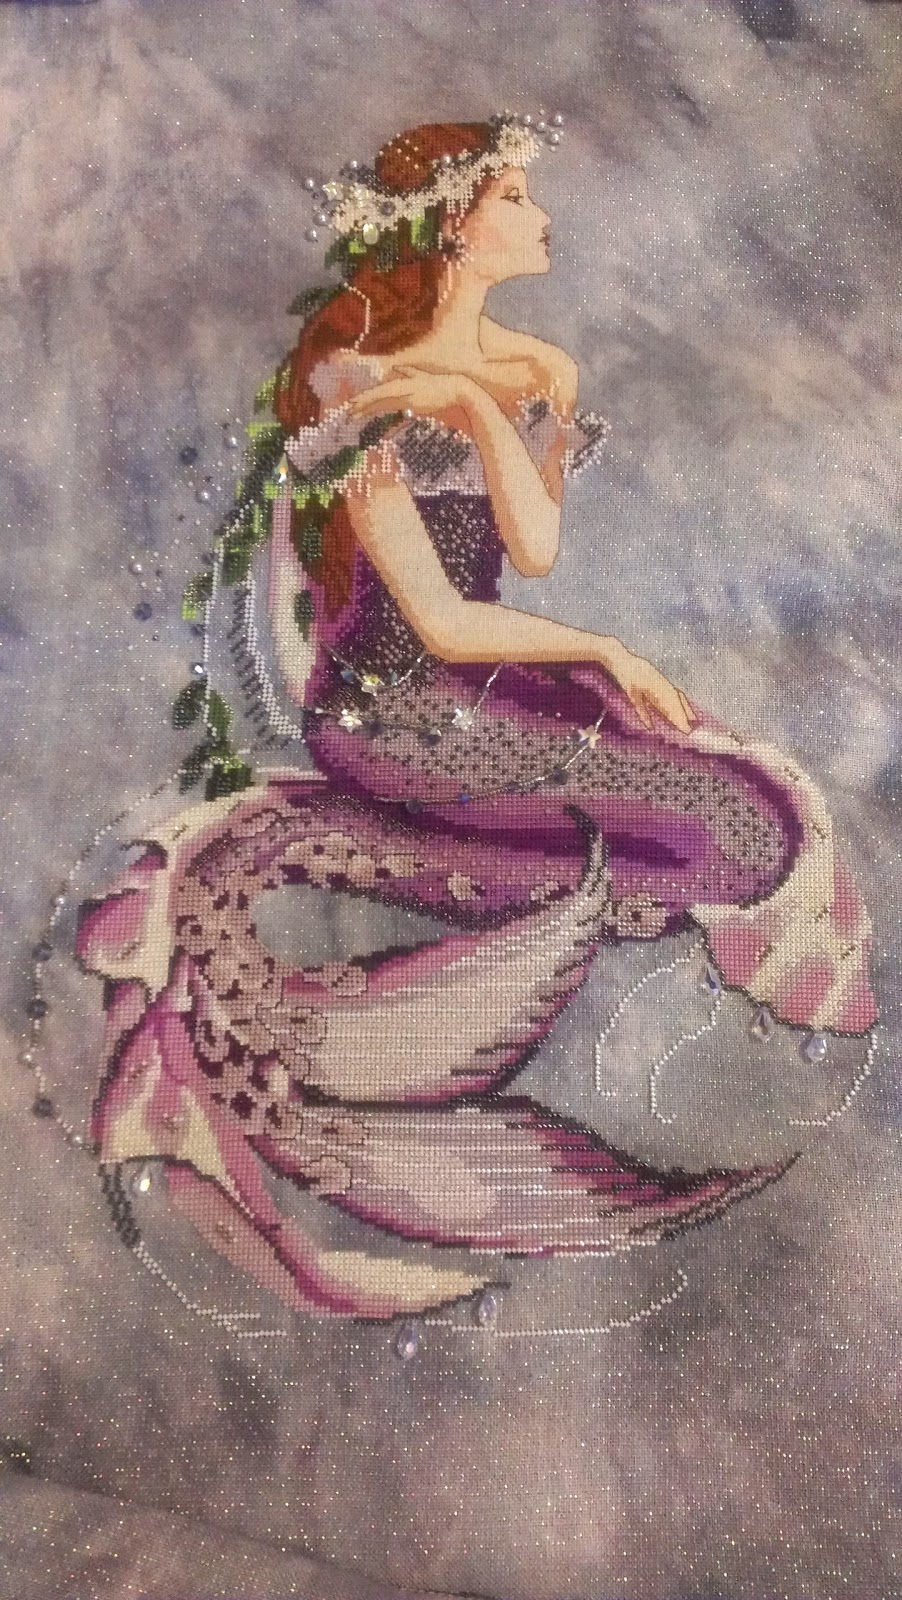 Stitching under the sea enchanted mermaid purple silk conversion enchanted mermaid purple silk conversion nvjuhfo Image collections